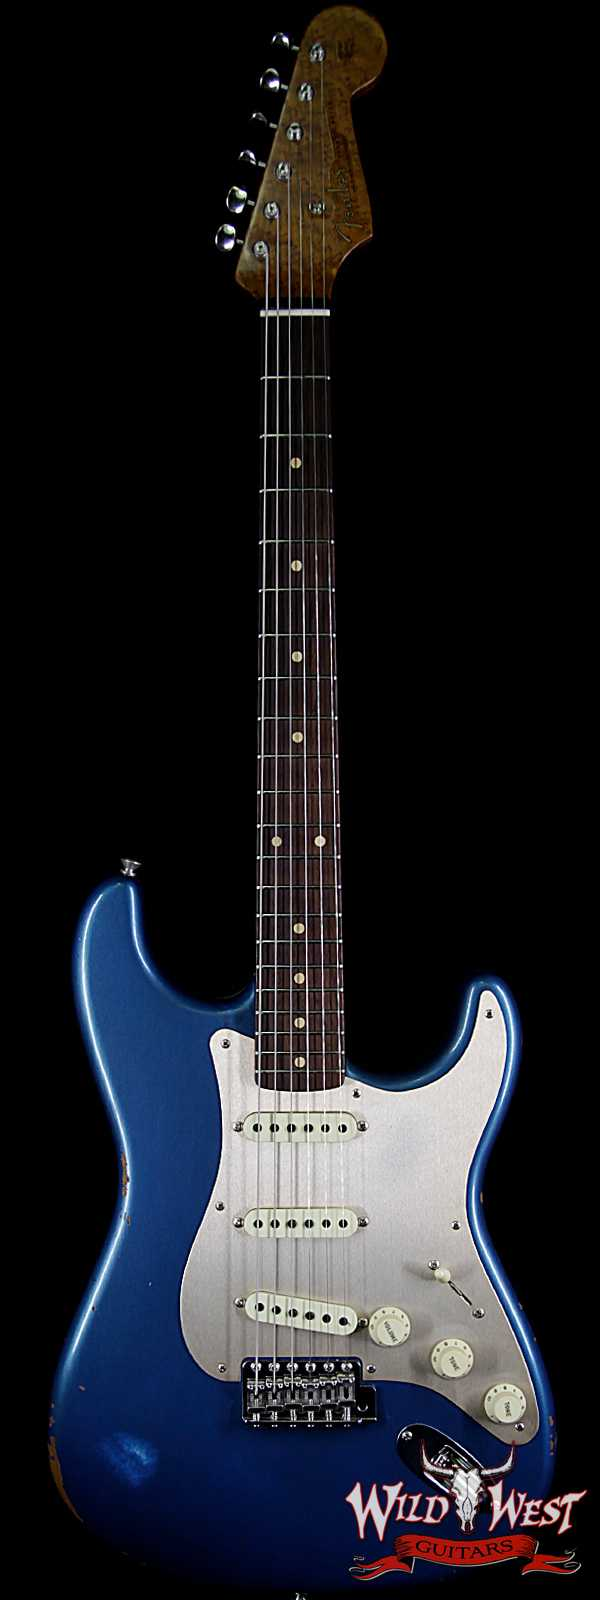 Fender Custom Shop 30th Anniversary LTD Roasted 1960 Stratocaster Relic Birdseye Neck Rosewood Board Aged Lake Placid Blue